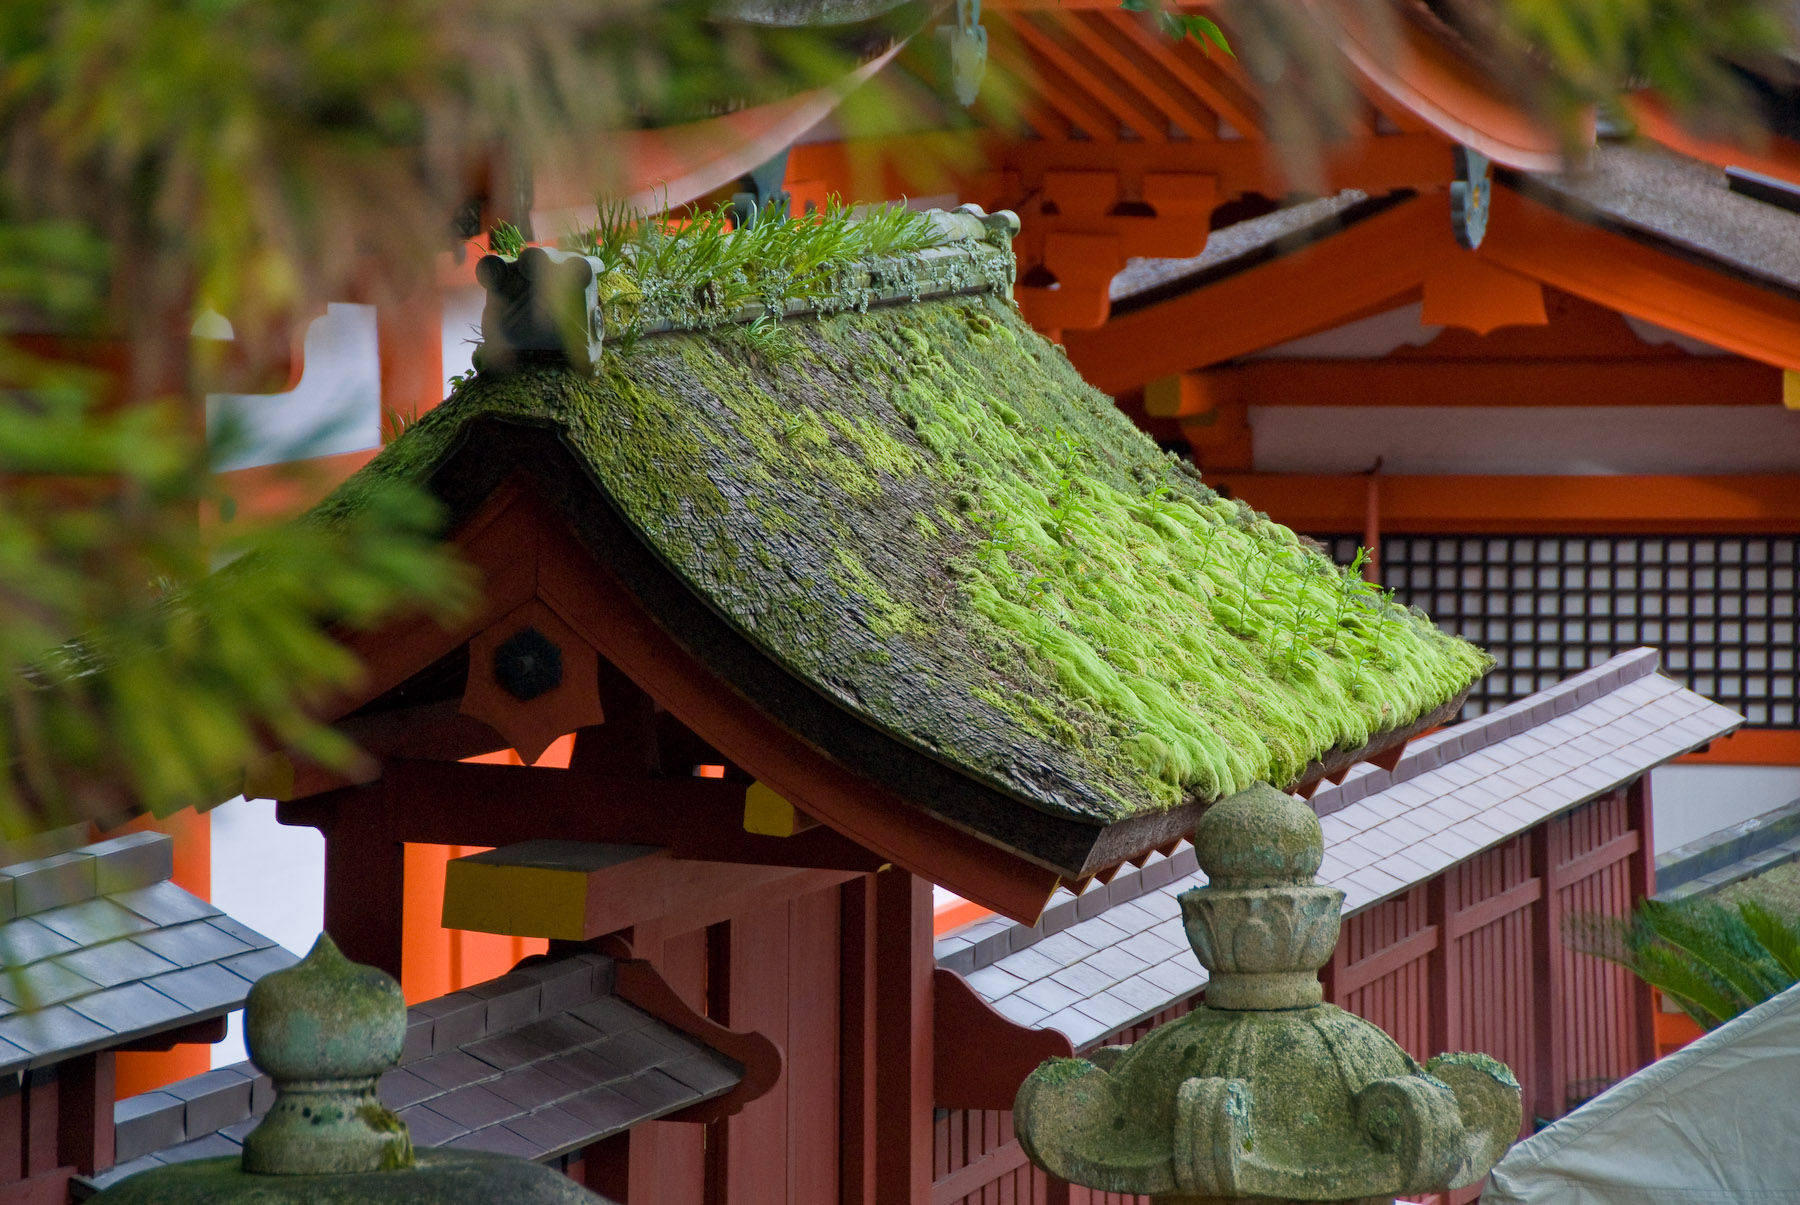 Jeffrey Friedl S Blog The Beauty Of A Weathered Shrine Roof